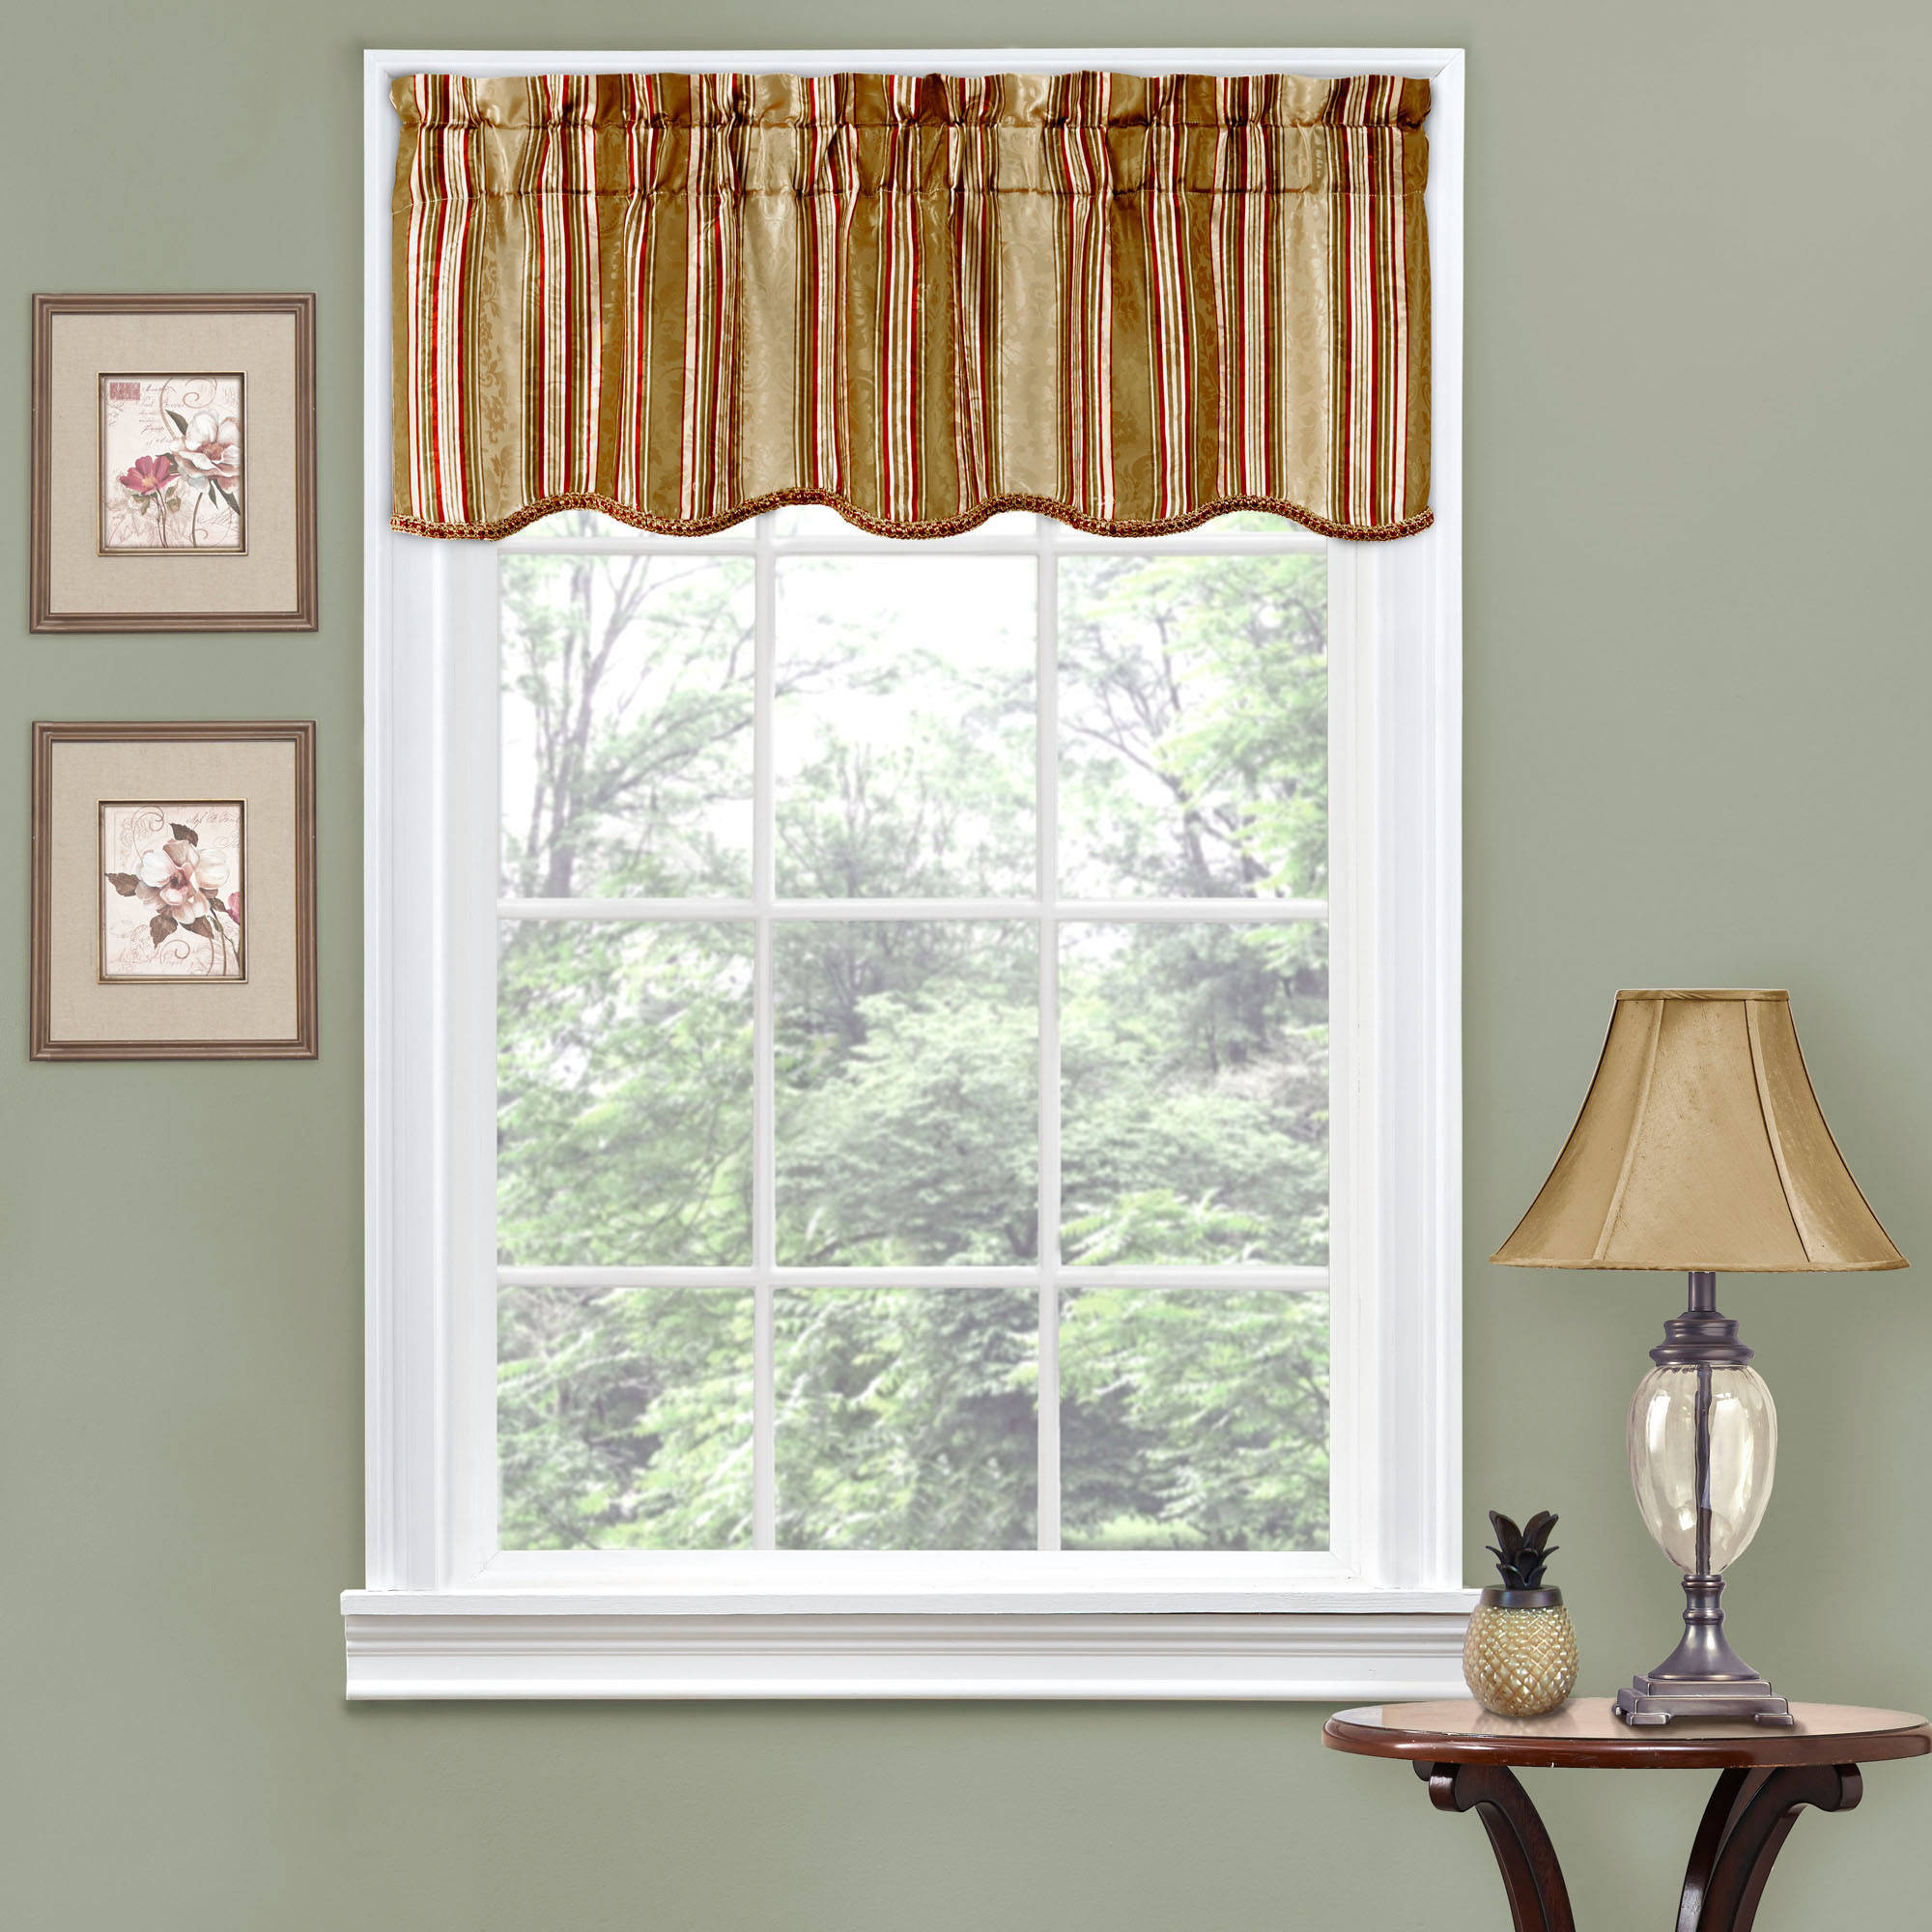 Valances Window Treatments Traditions by Waverly Stripe Ensemble Scalloped Window Curtain Valance -  Walmart.com